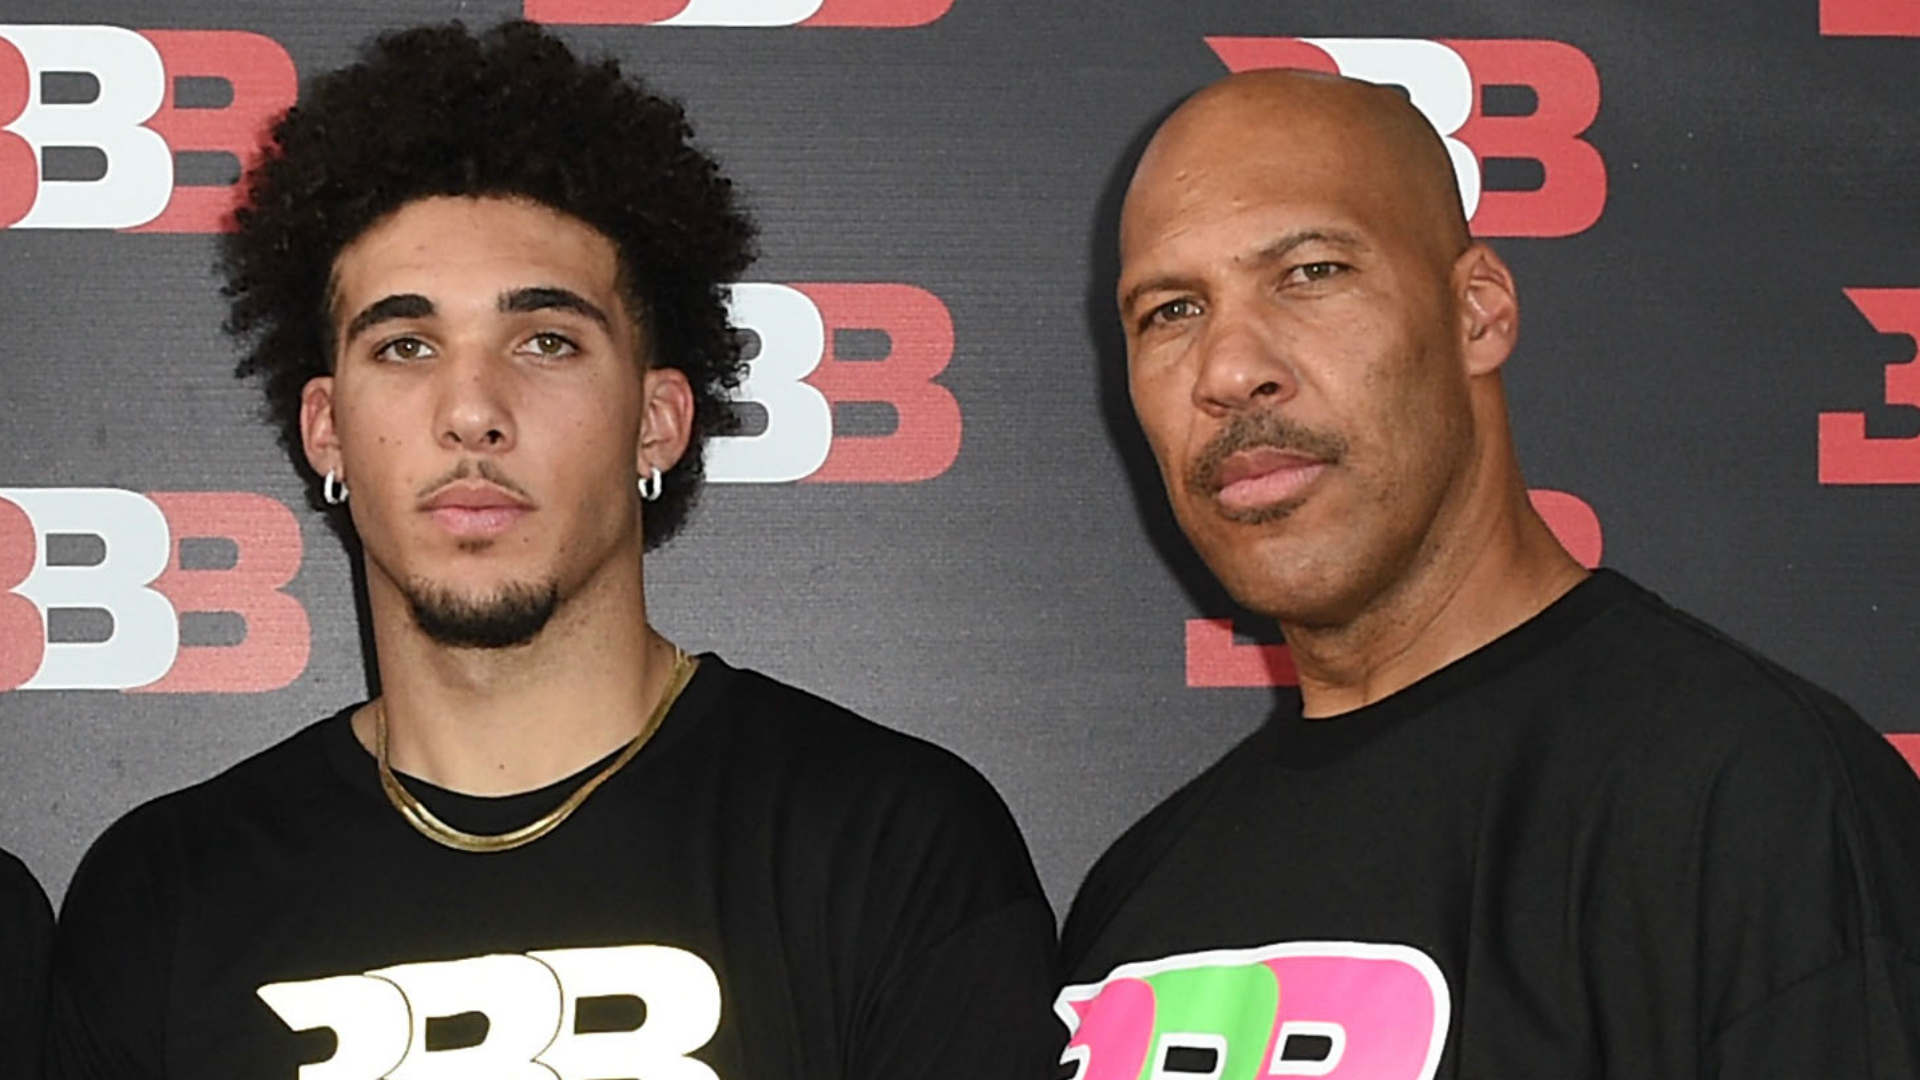 LaVar Ball says feud with President Trump didn't affect business: 'We good'